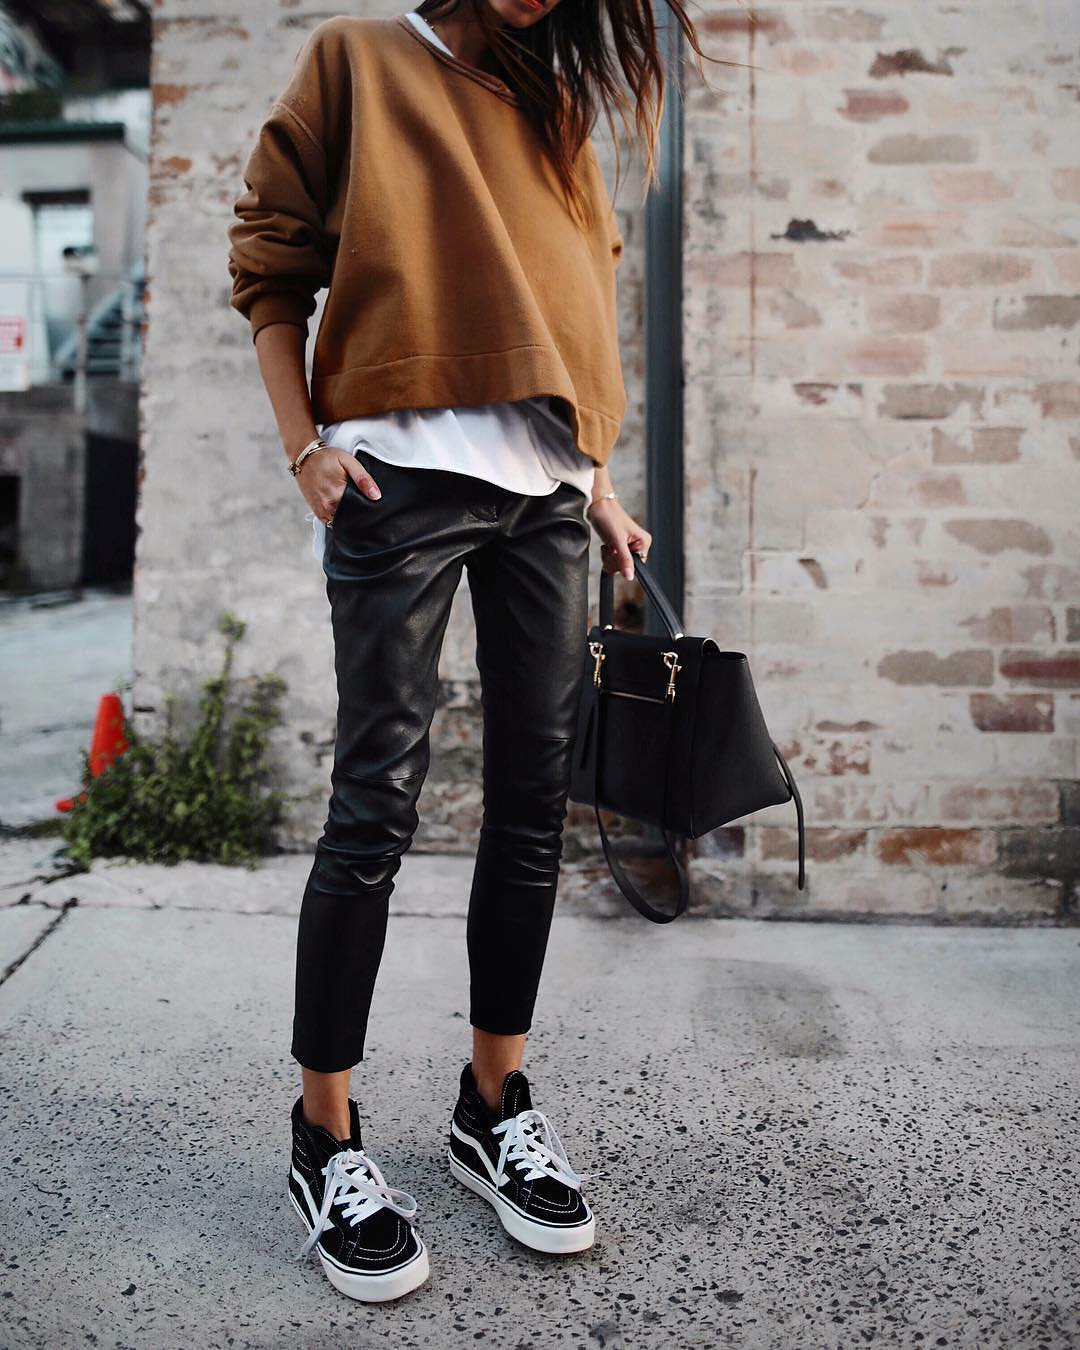 Brown Sweatshirt And Black Leather Pants With Black High Top Sneakers For Fall 2020